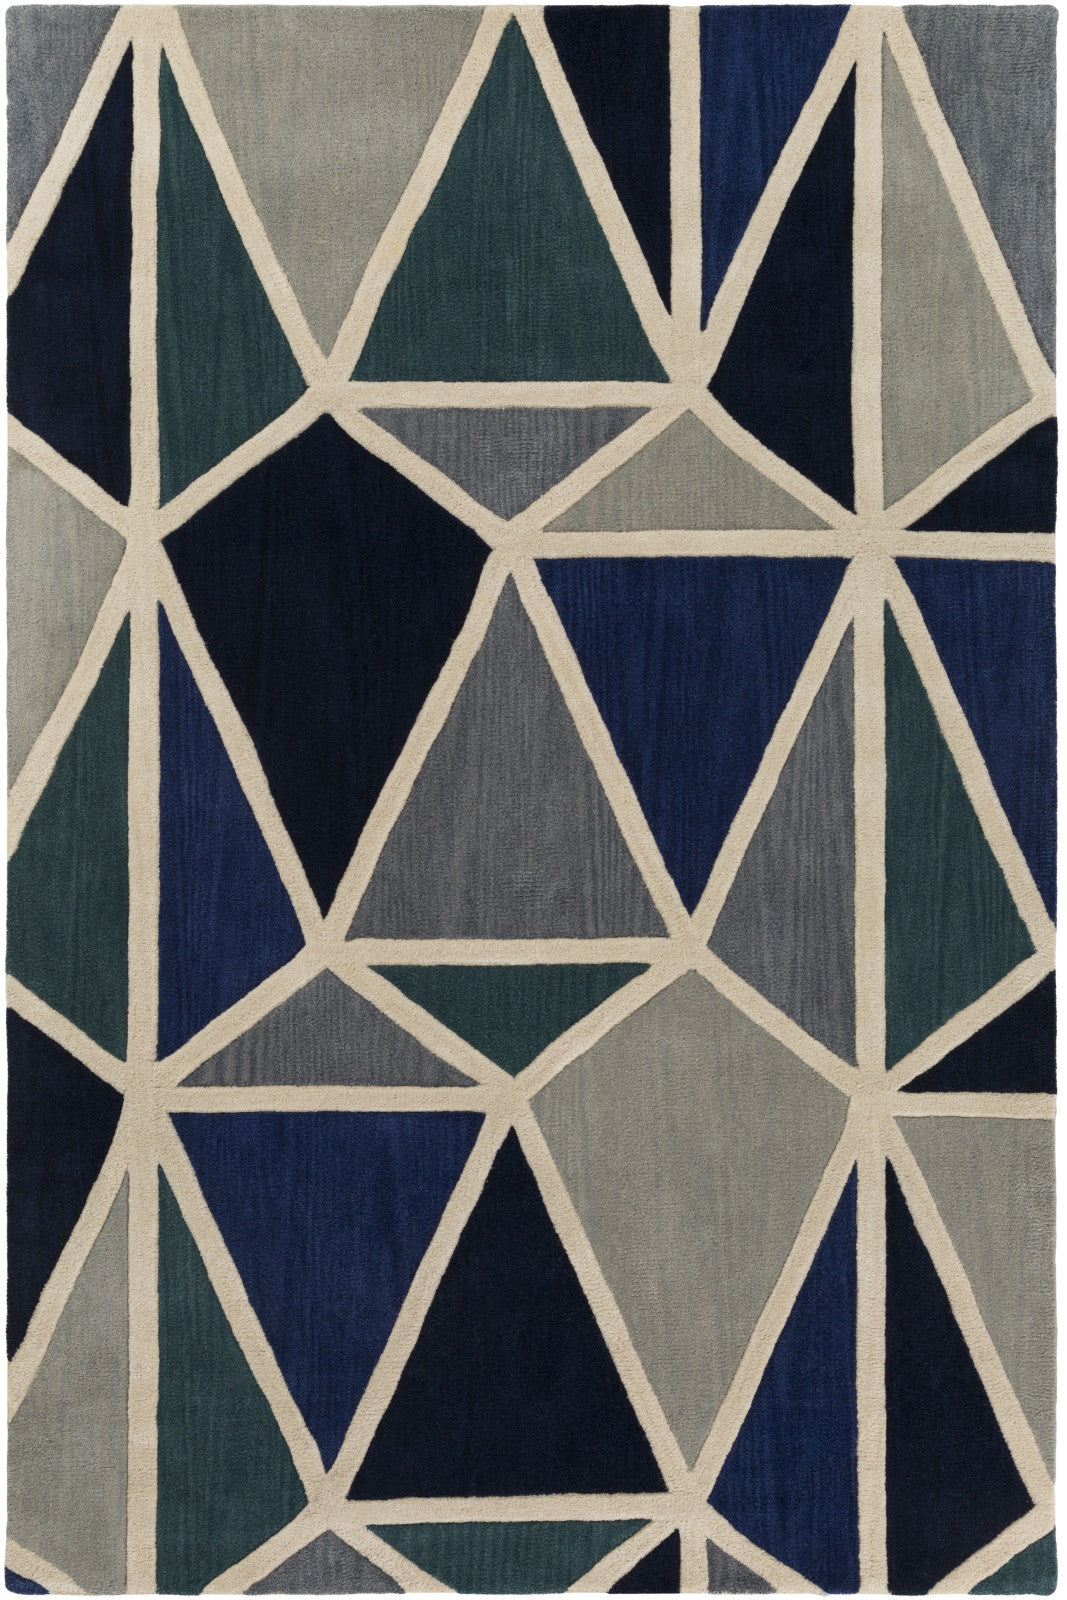 Oasis OAS-1118 Blue Area Rug by Surya